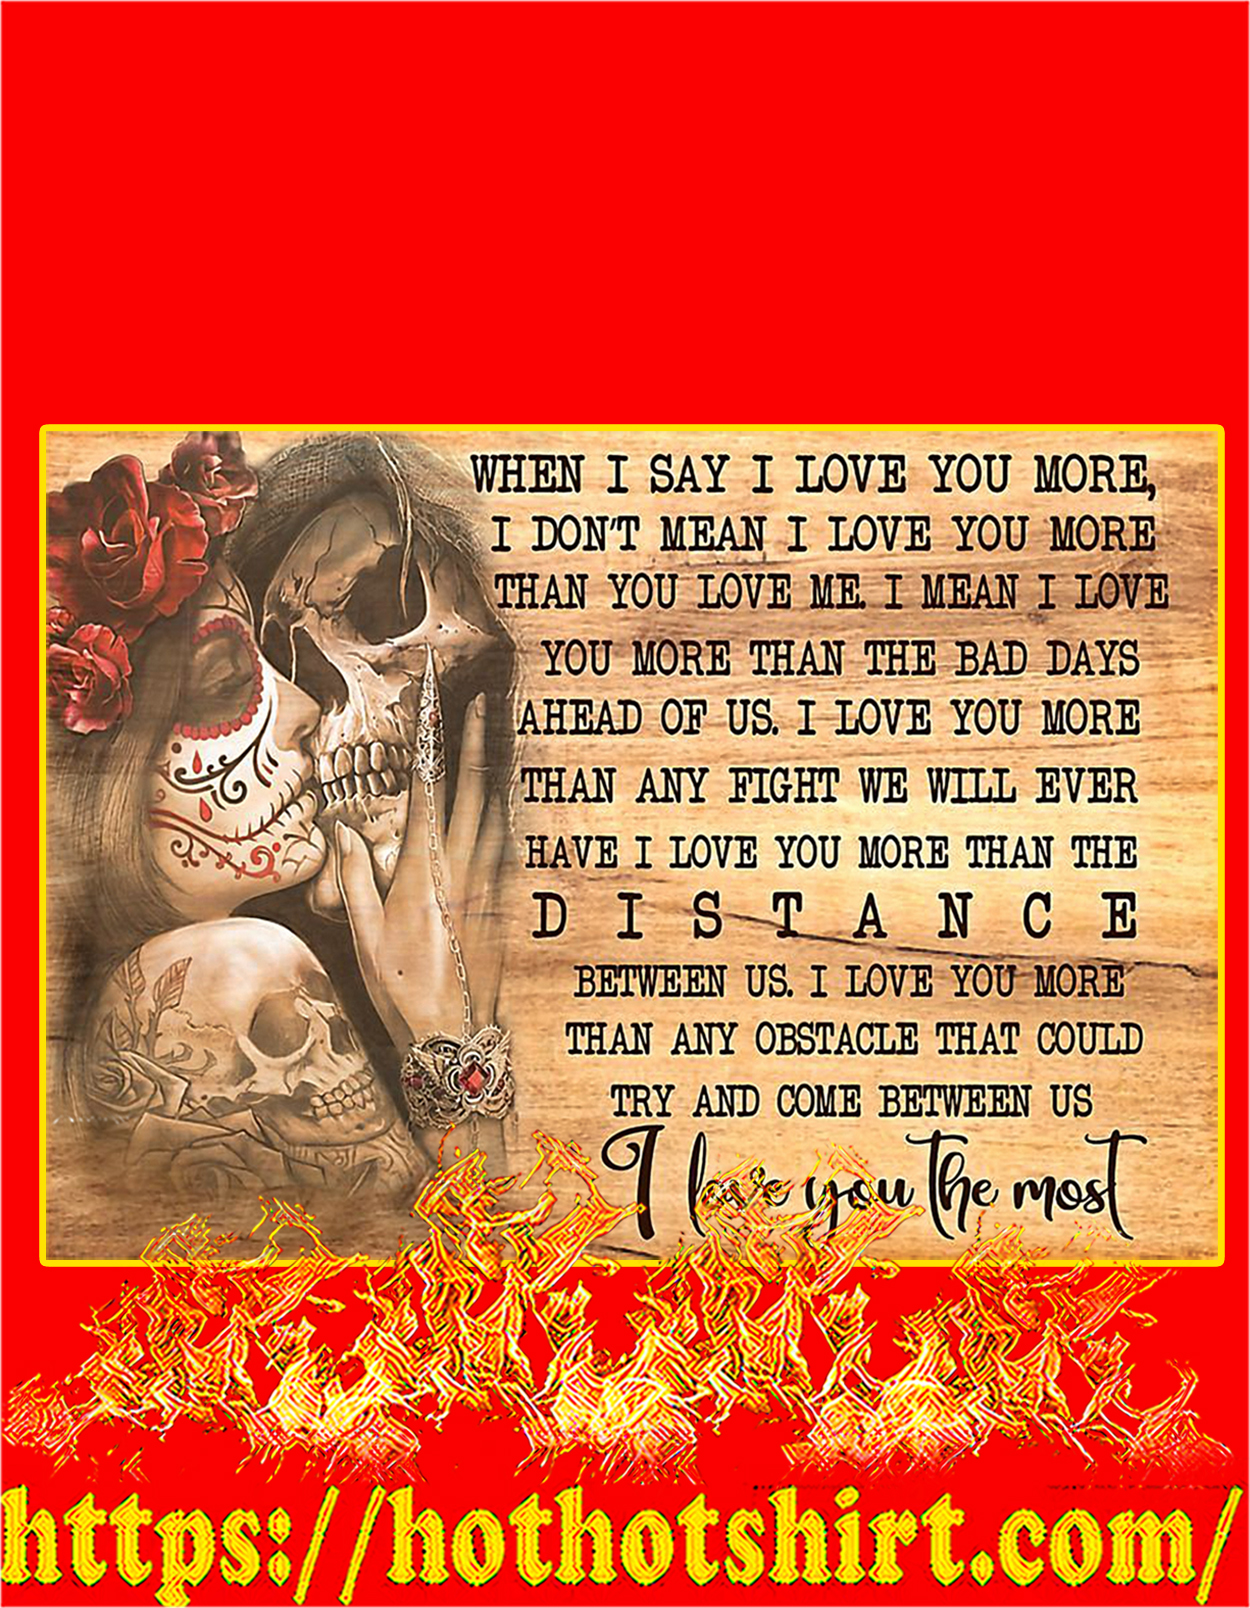 Skull when I say I love you the most poster - A3